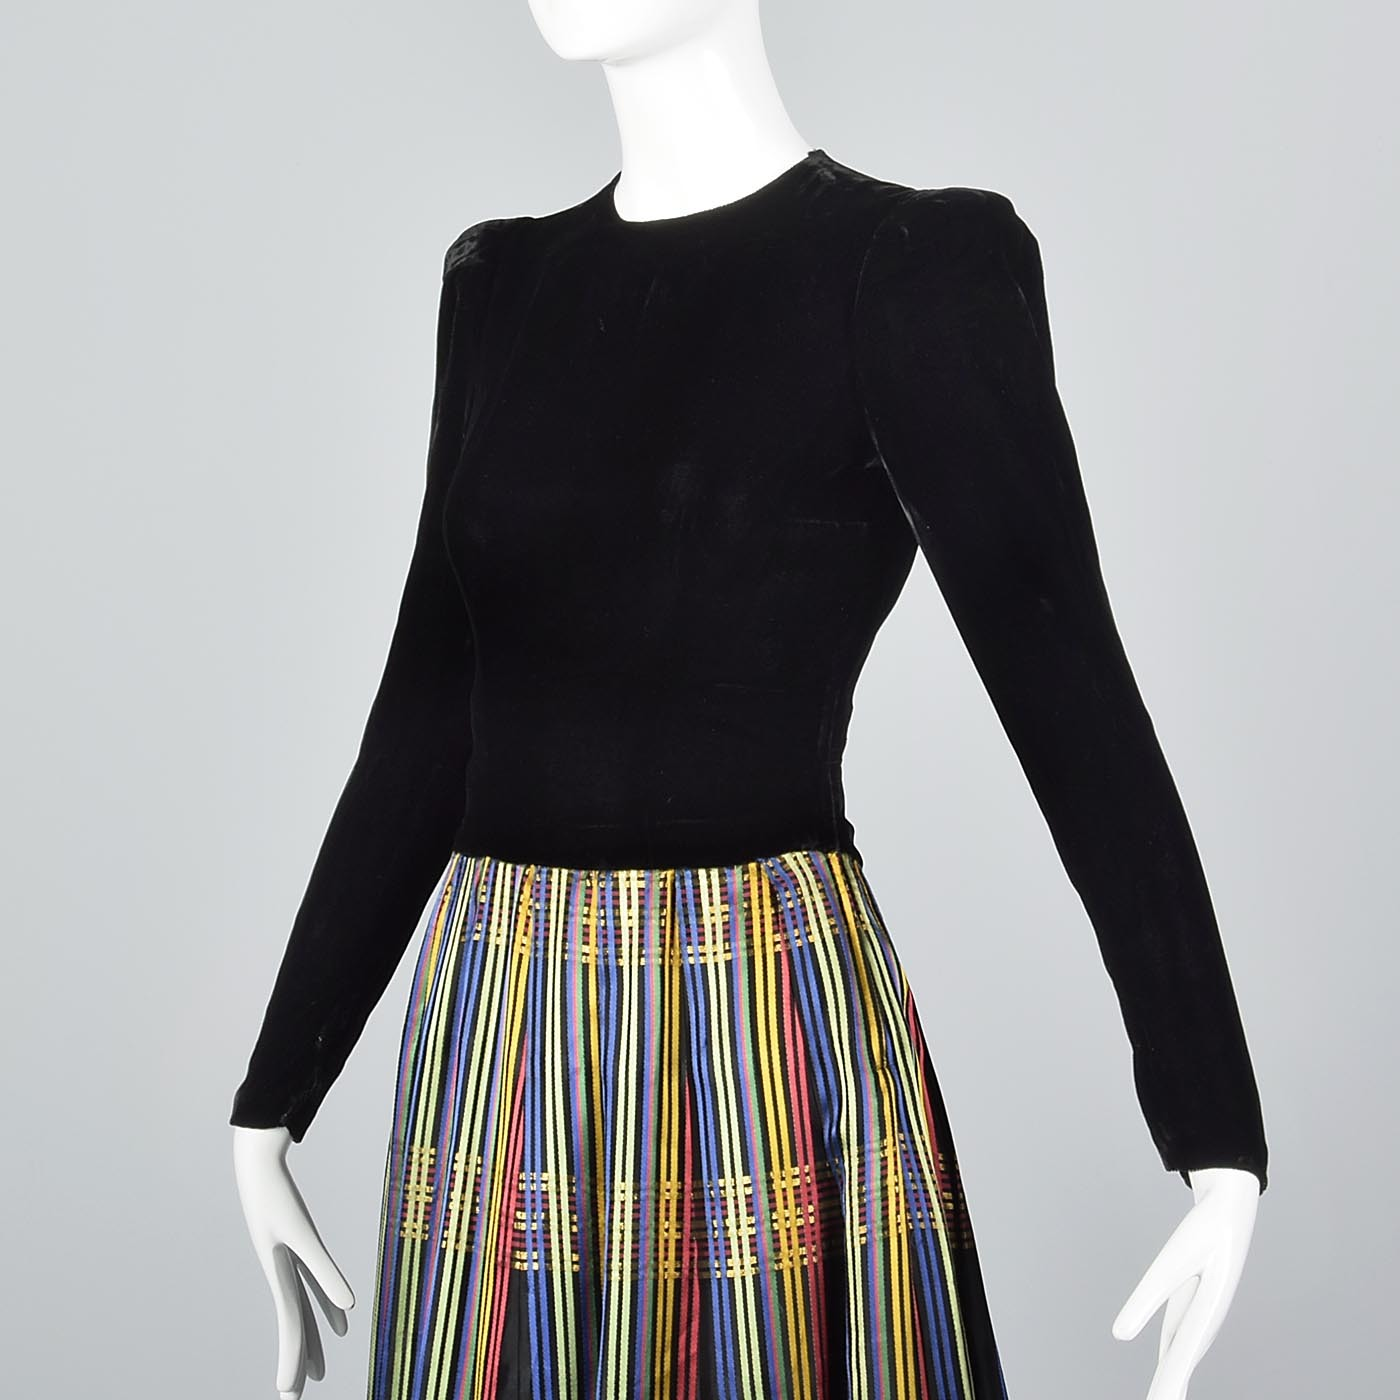 1930s Black Velvet Maxi Dress with Stripe Skirt